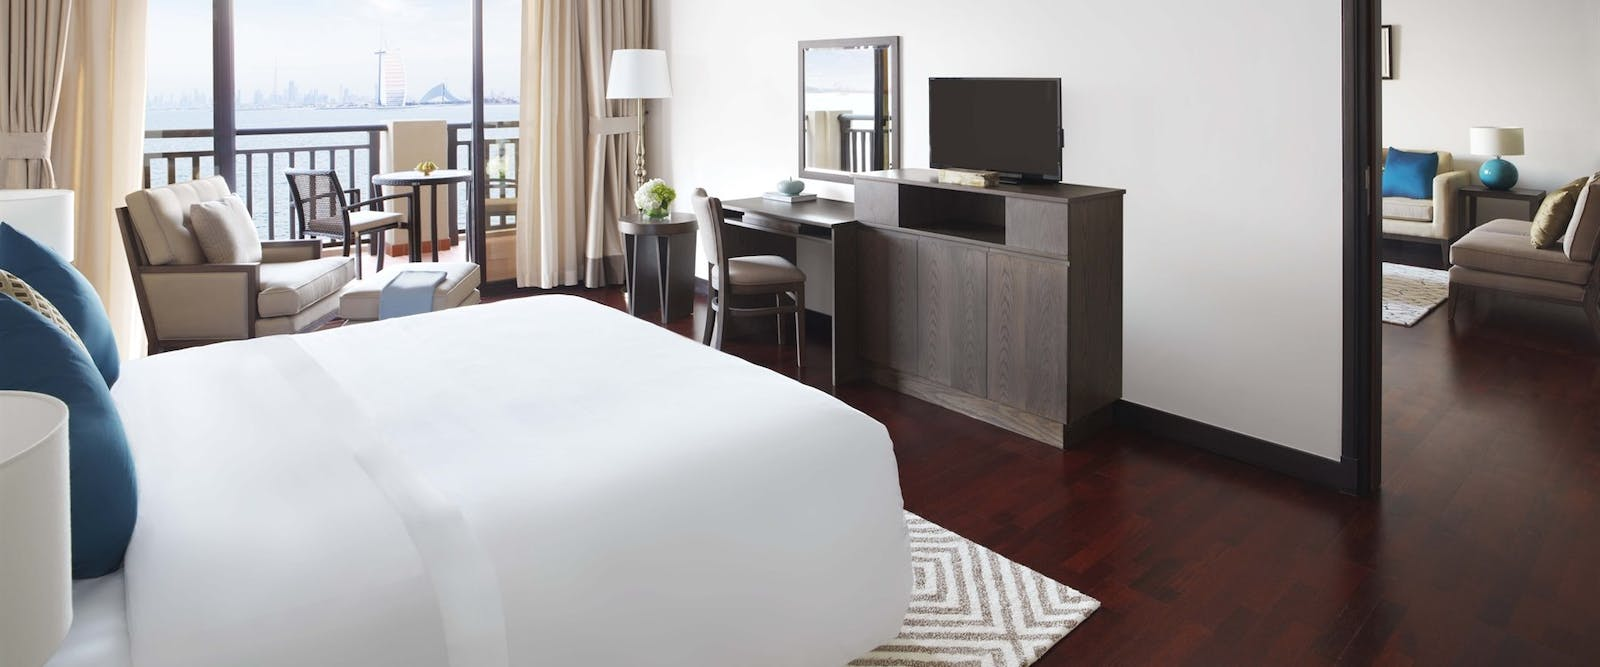 Two Bedroom Apartment at Anantara Dubai The Palm Resort & Spa